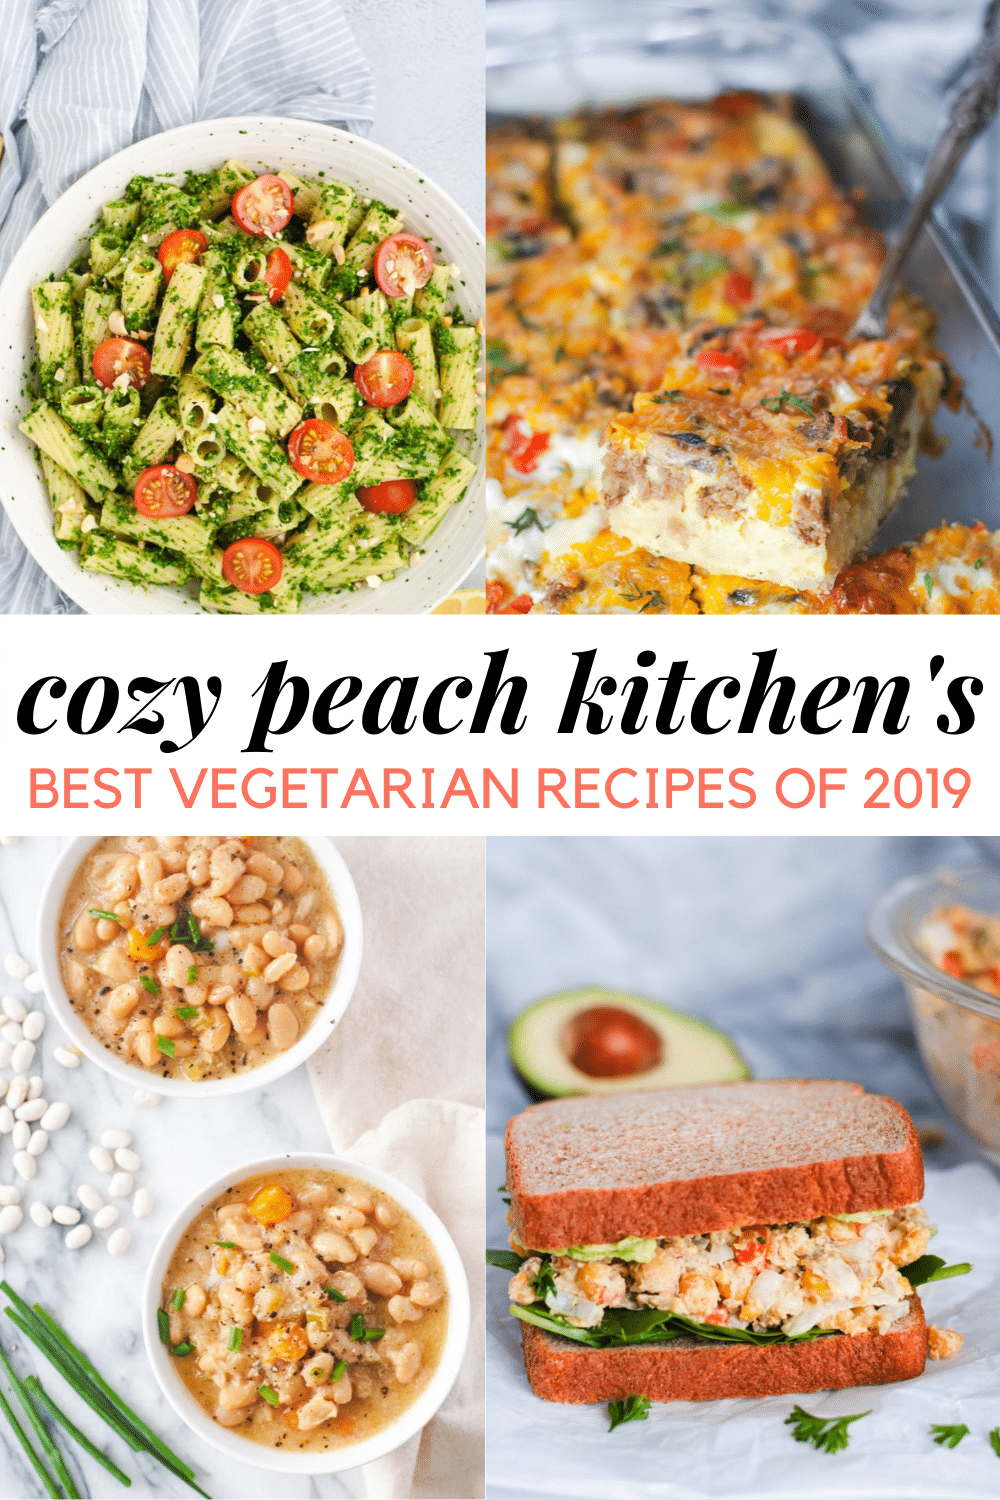 """Graphic showing food and """"cozy peach kitchen's best vegetarian recipes of 2019"""""""